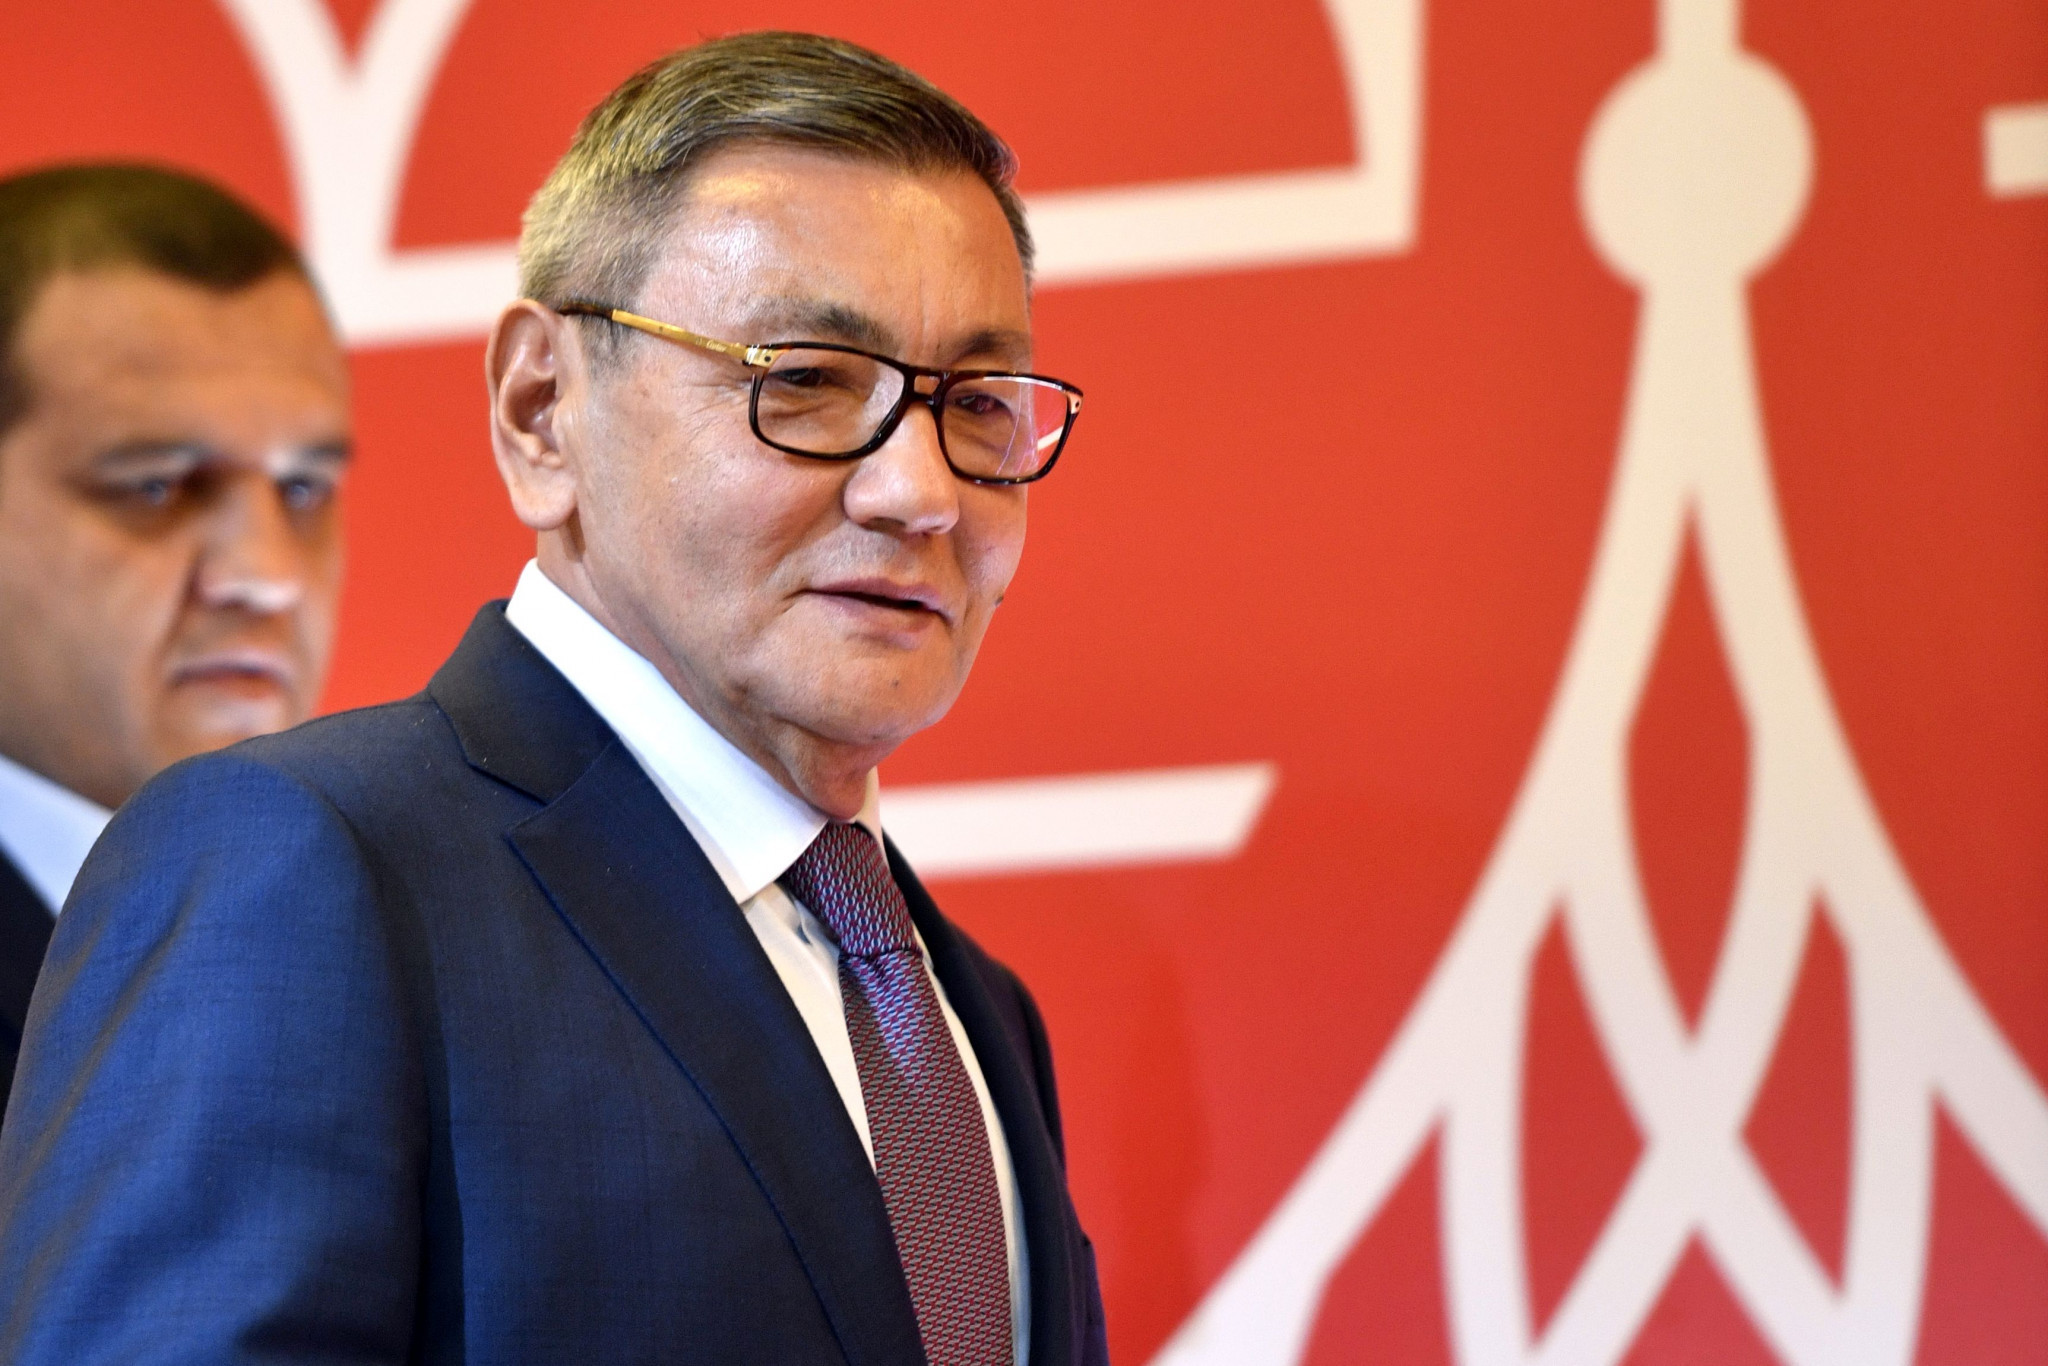 Gafur Rakhimov was elected AIBA President against the strict wishes of the IOC ©Getty Images